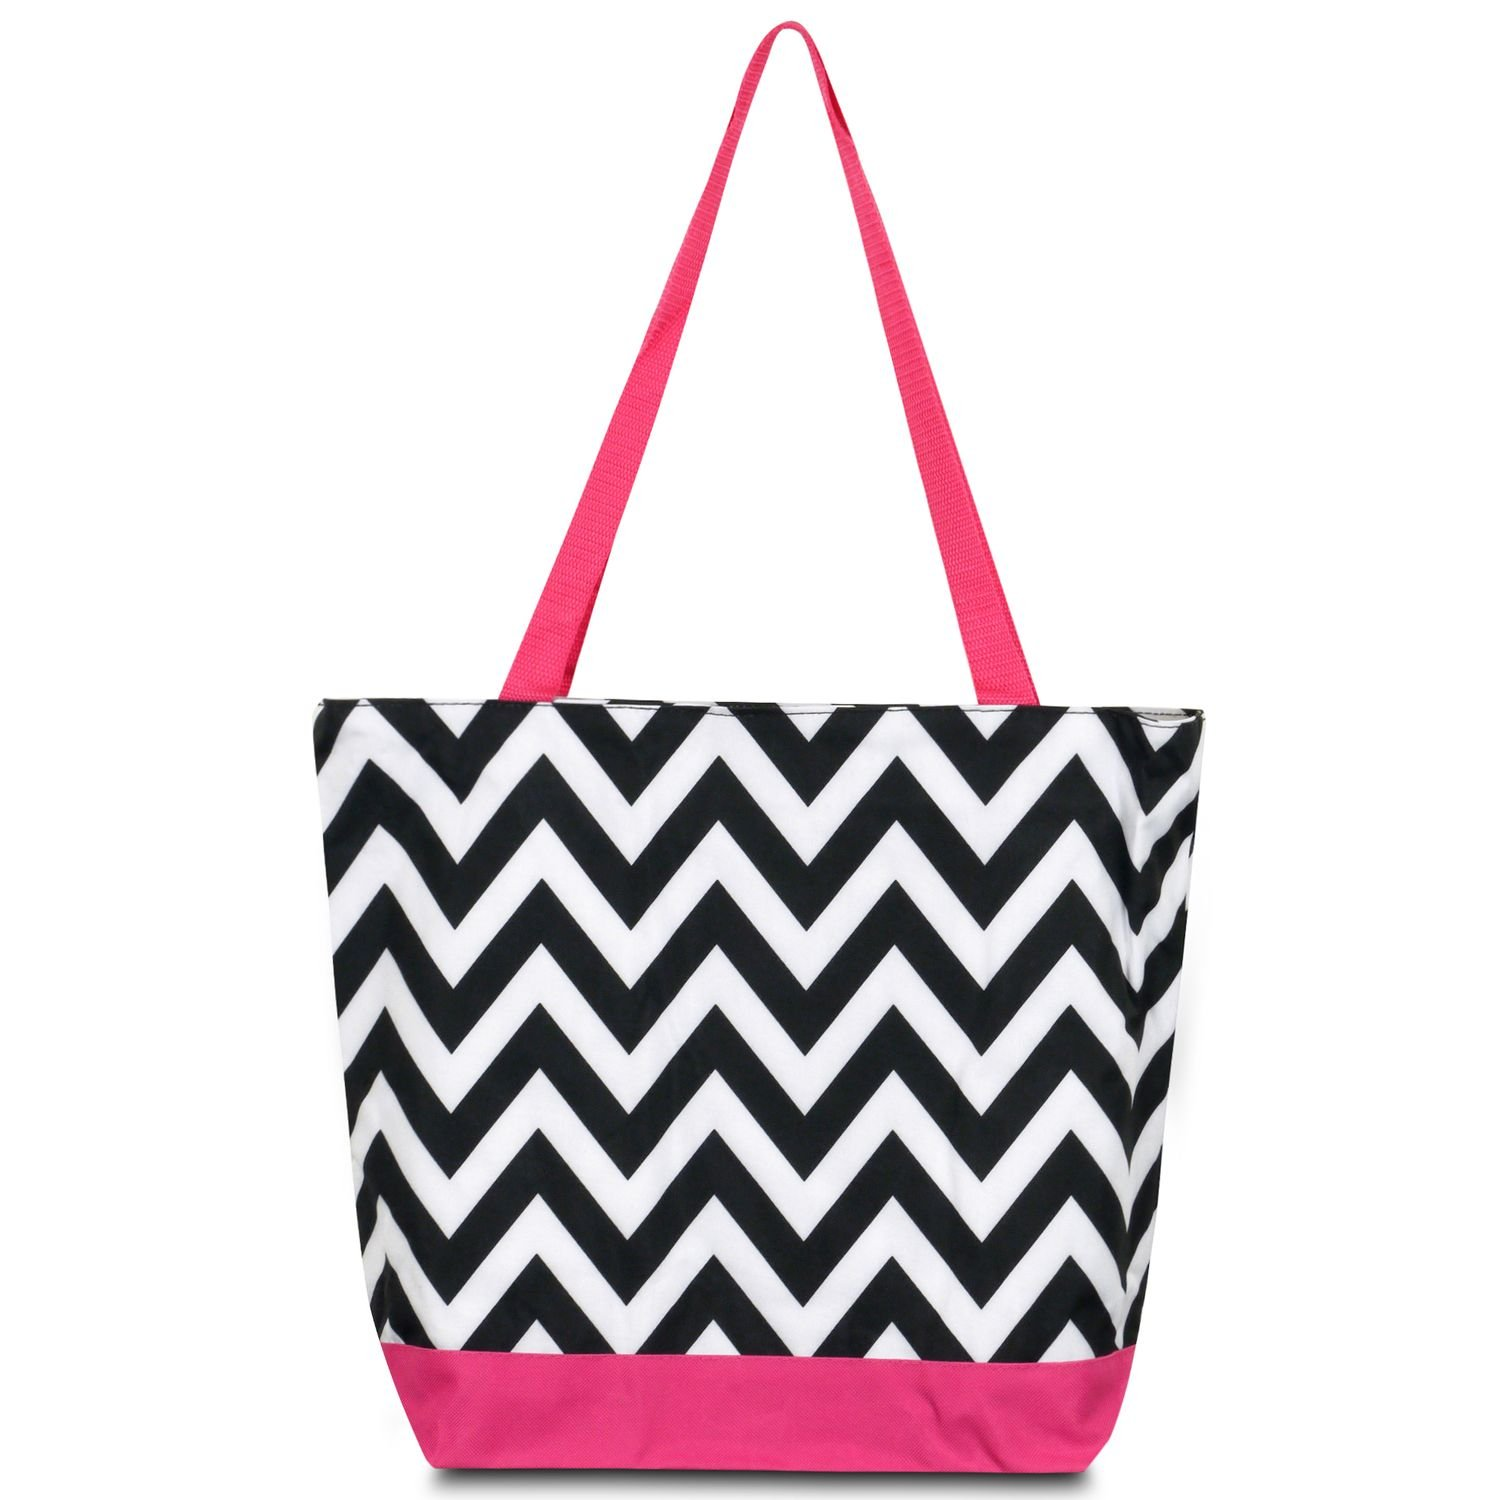 zodaca Large All Purpose Travel Toteバッグ B073QHH2BN Black/ White Chevron with Pink Trim Black/ White Chevron with Pink Trim